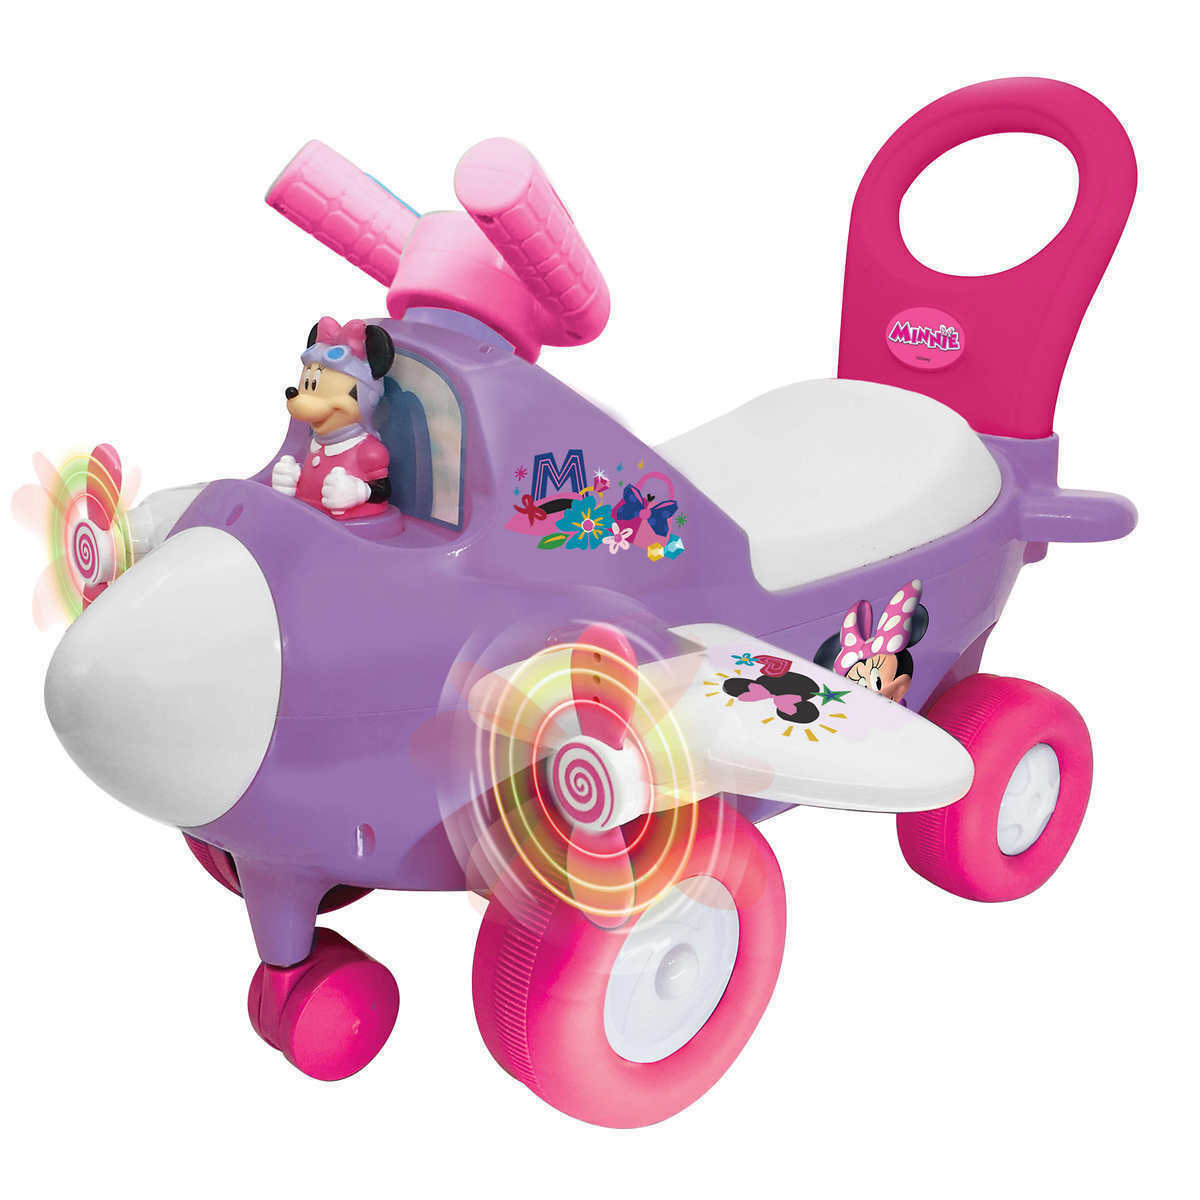 Disney Junior Minnie Mouse Lights N Sounds Activity Plane Ride On